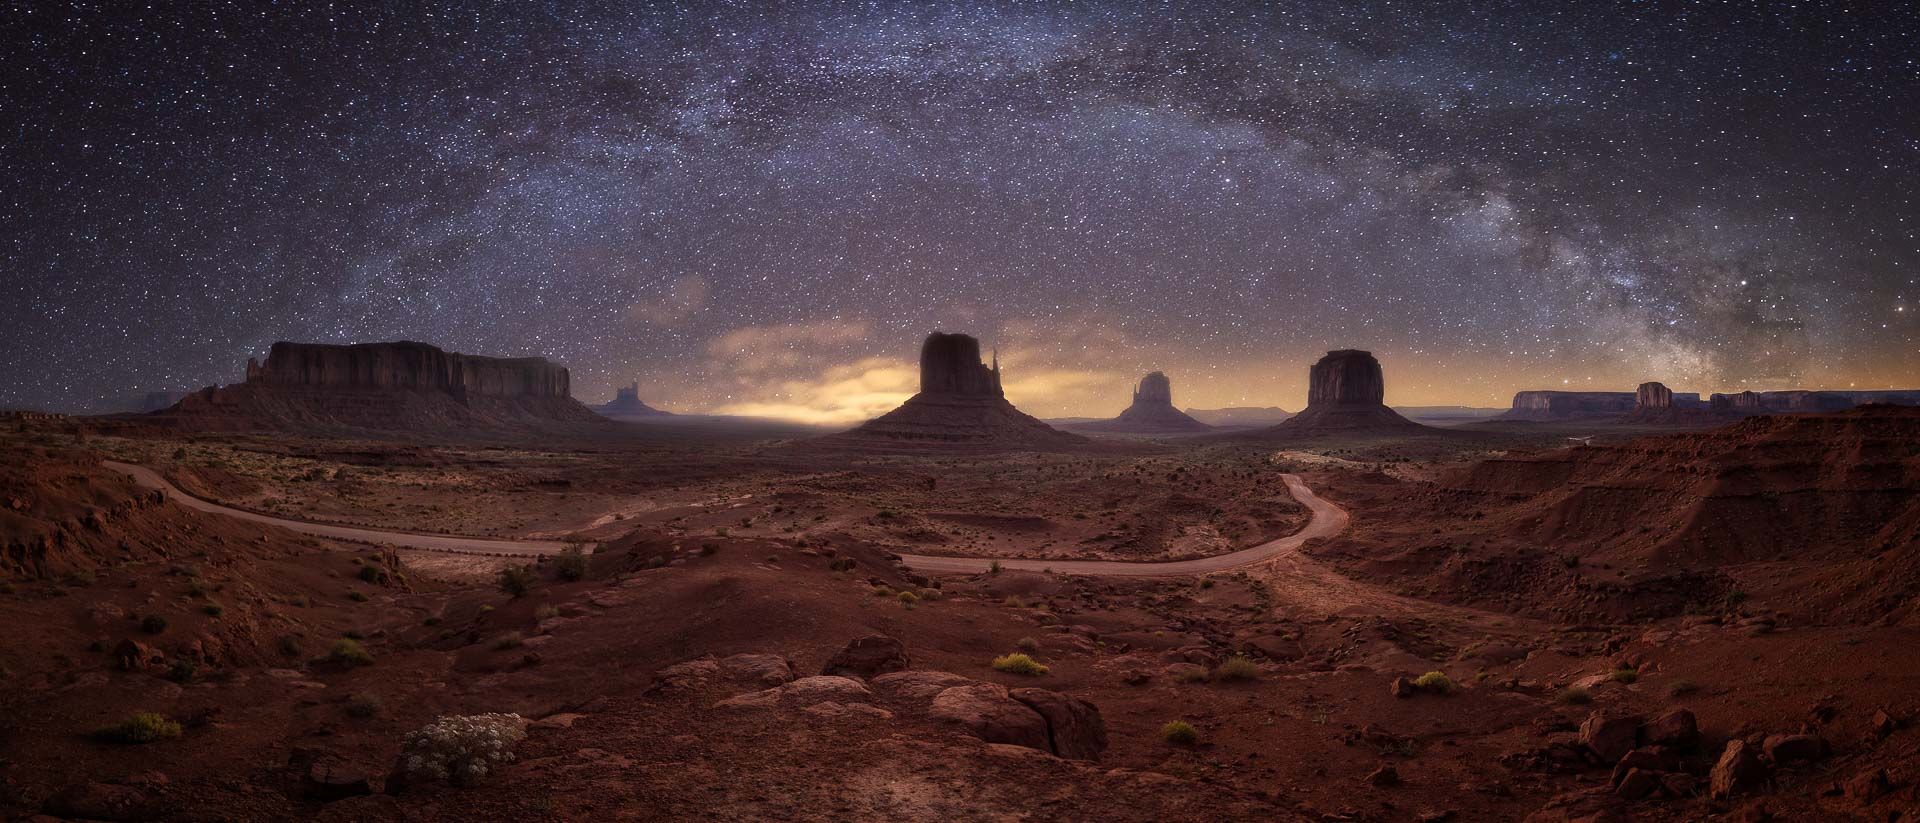 Milky Way Monument Valley stars Navajo photography tour